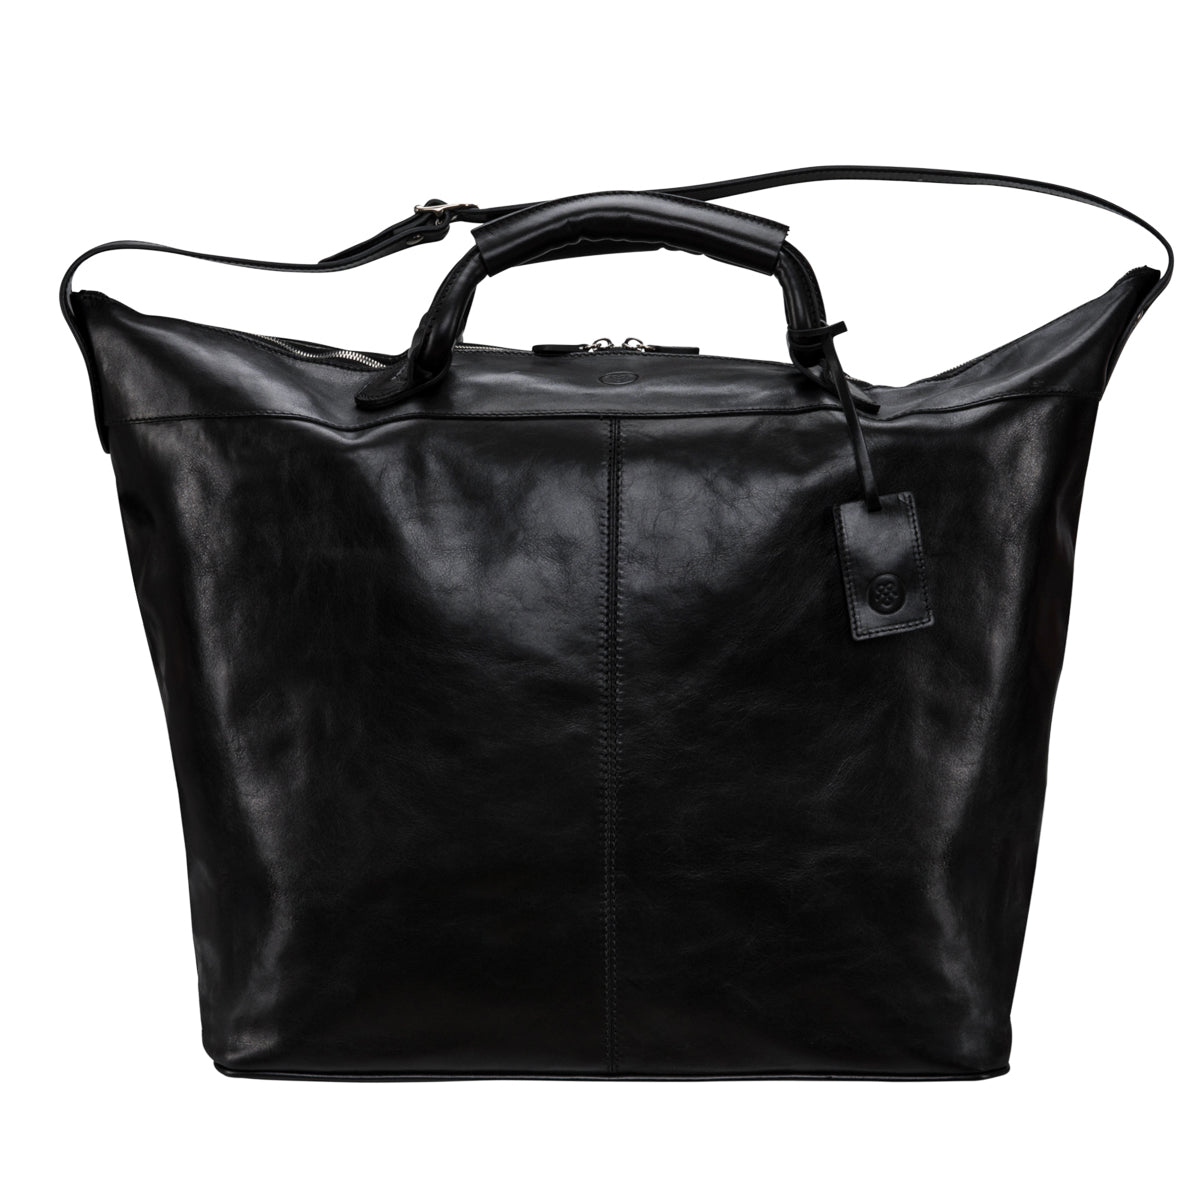 Image 1 of the 'Fabrizio' Black Veg-Tanned Leather Holdall